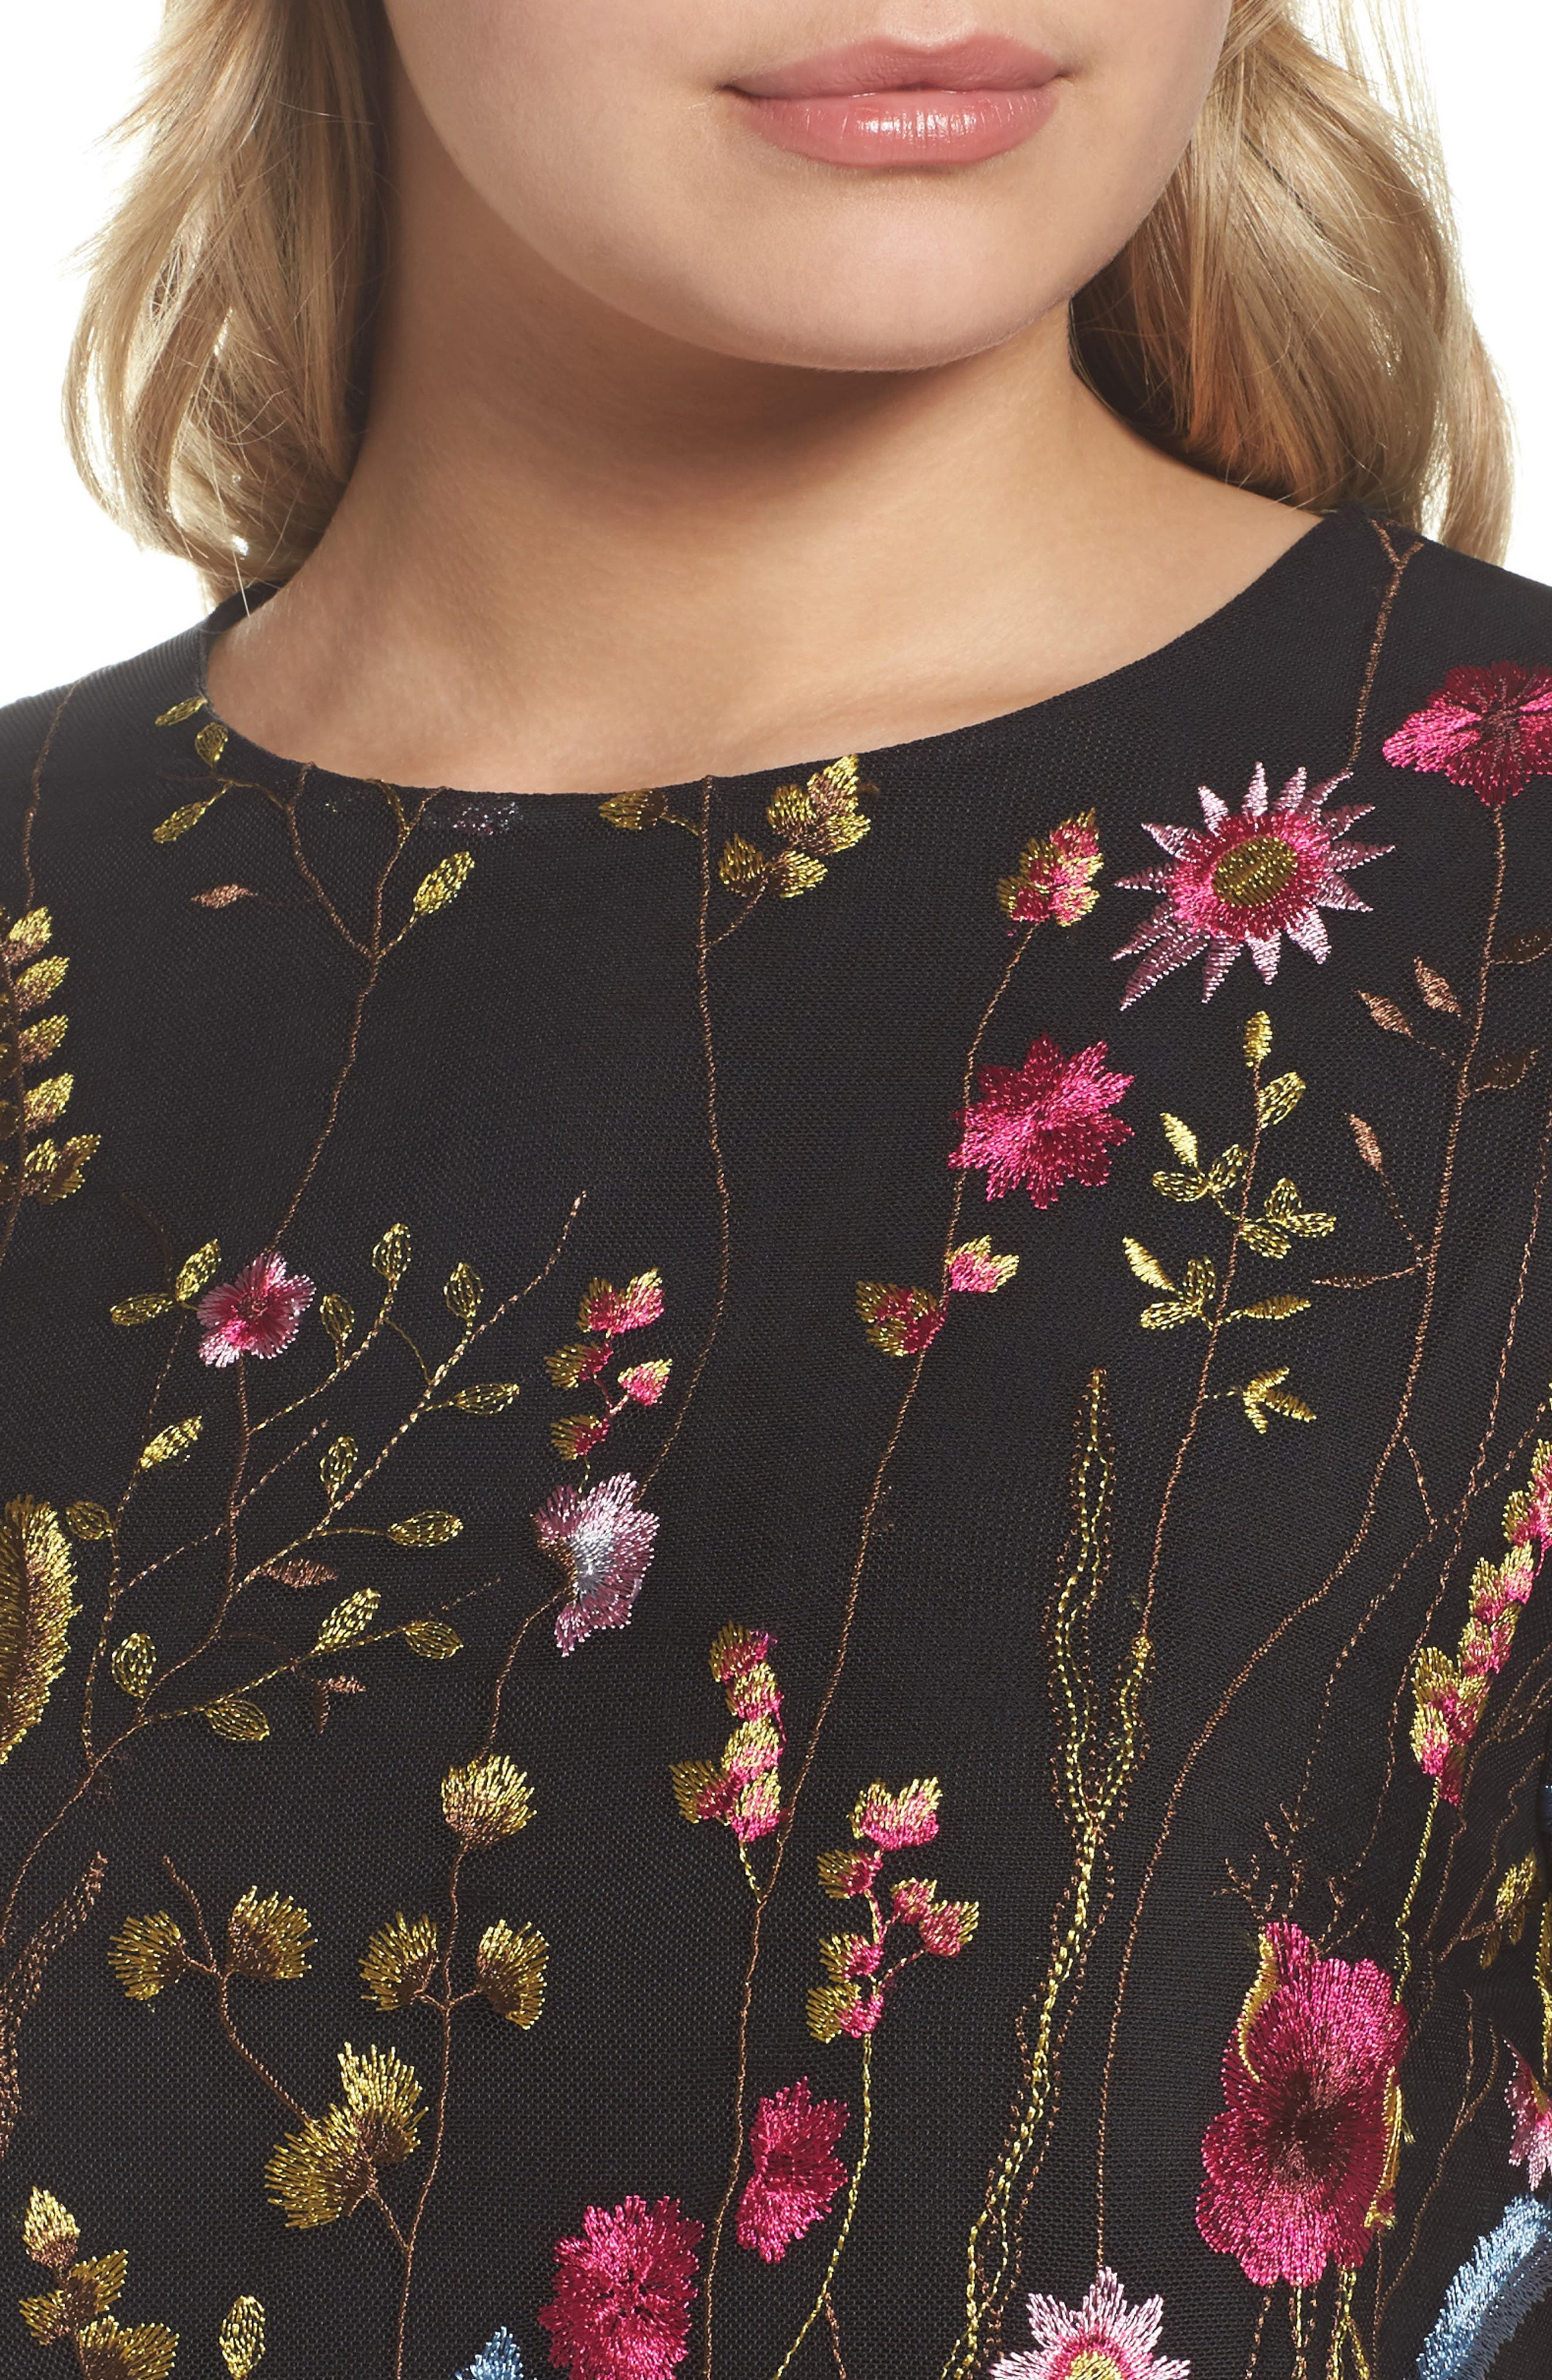 Rose Embroidered Shift Dress,                             Alternate thumbnail 4, color,                             429